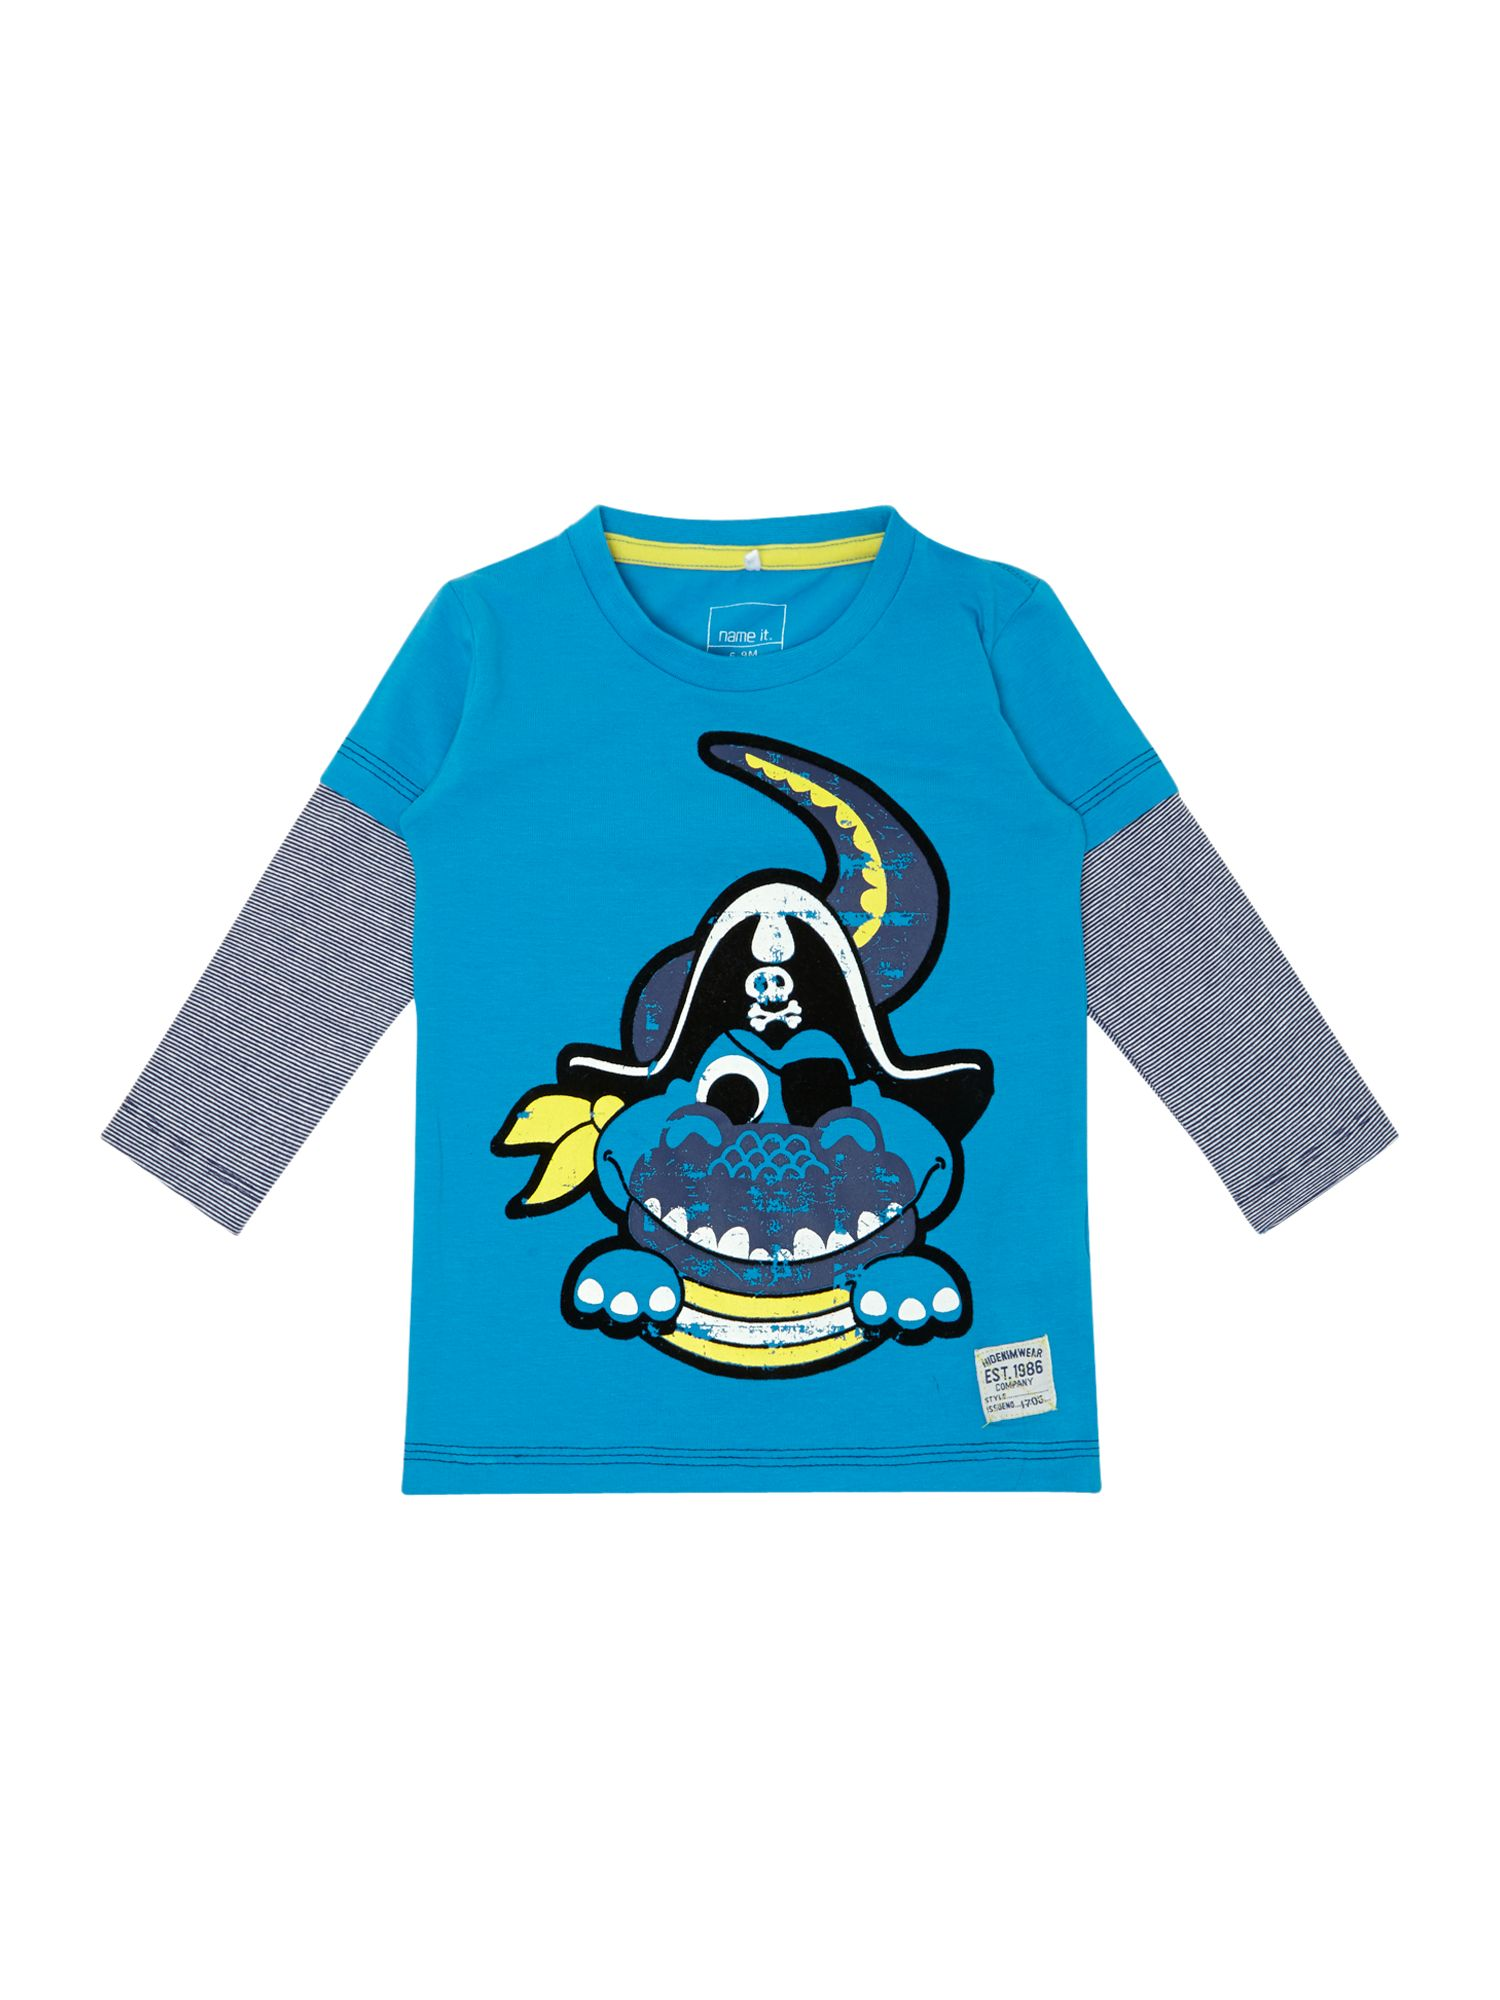 Boys pirate croc t-shirt